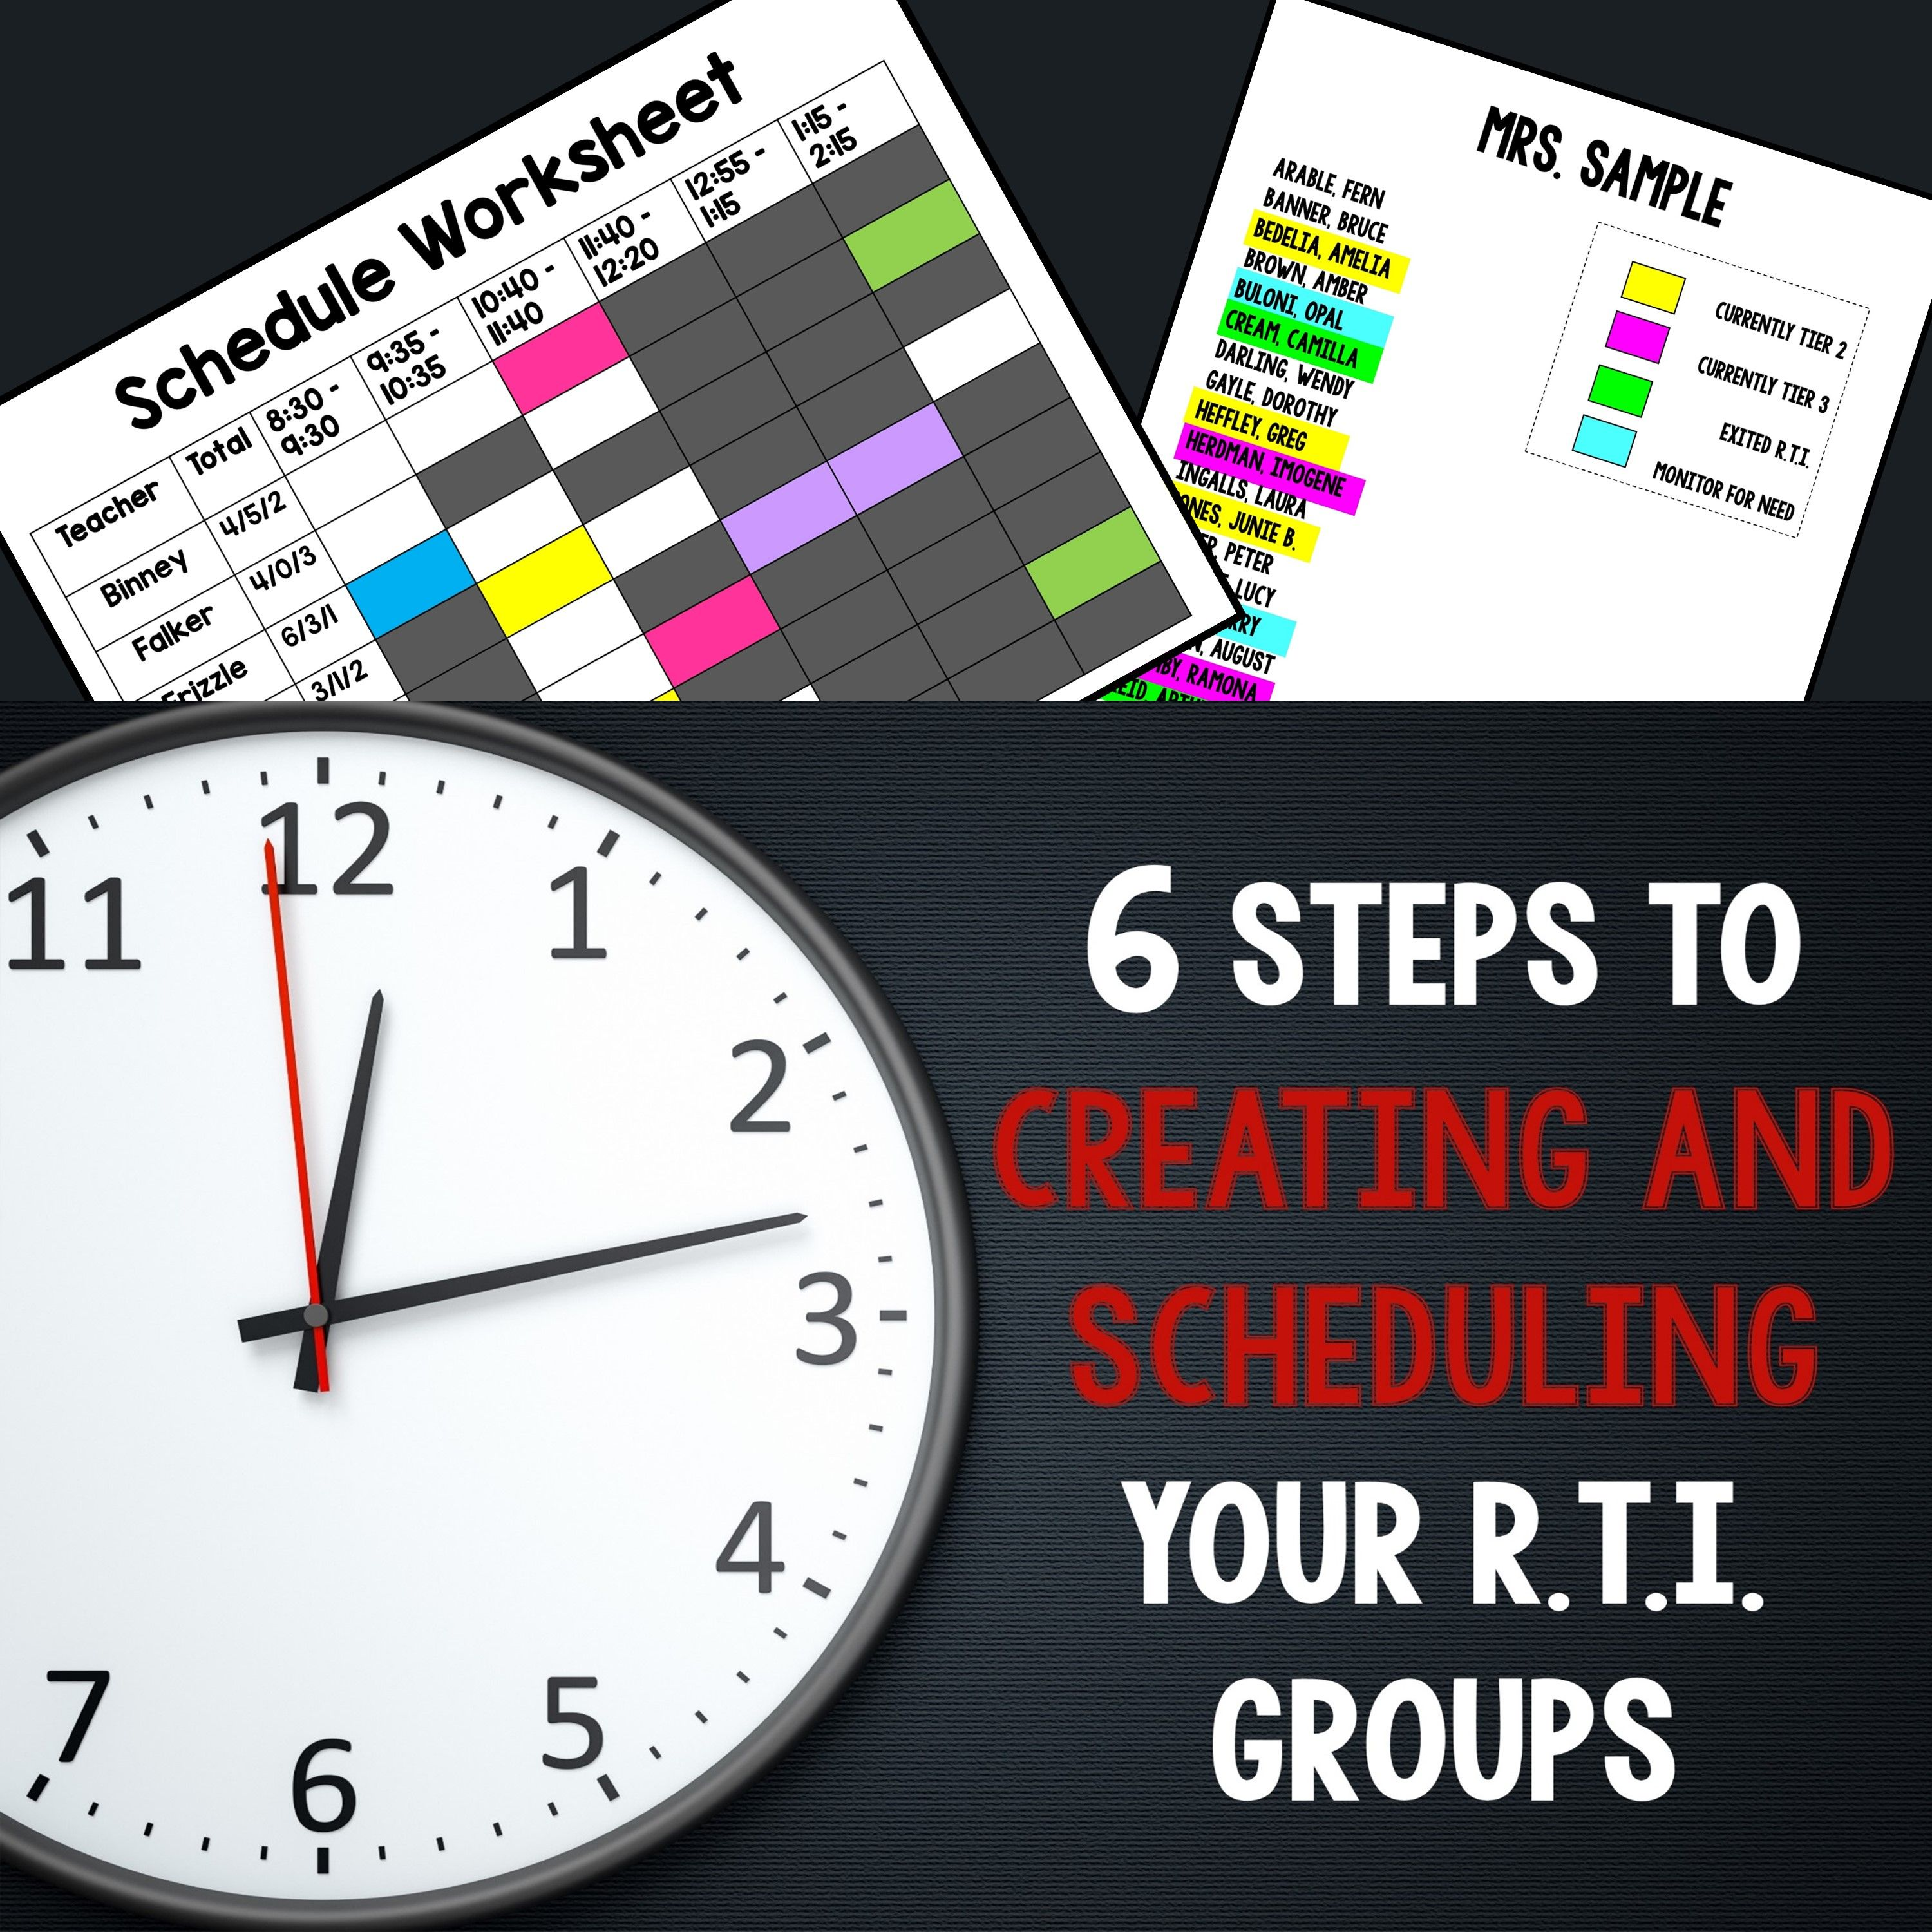 Step By Step Guide For Creating And Scheduling Rti Groups